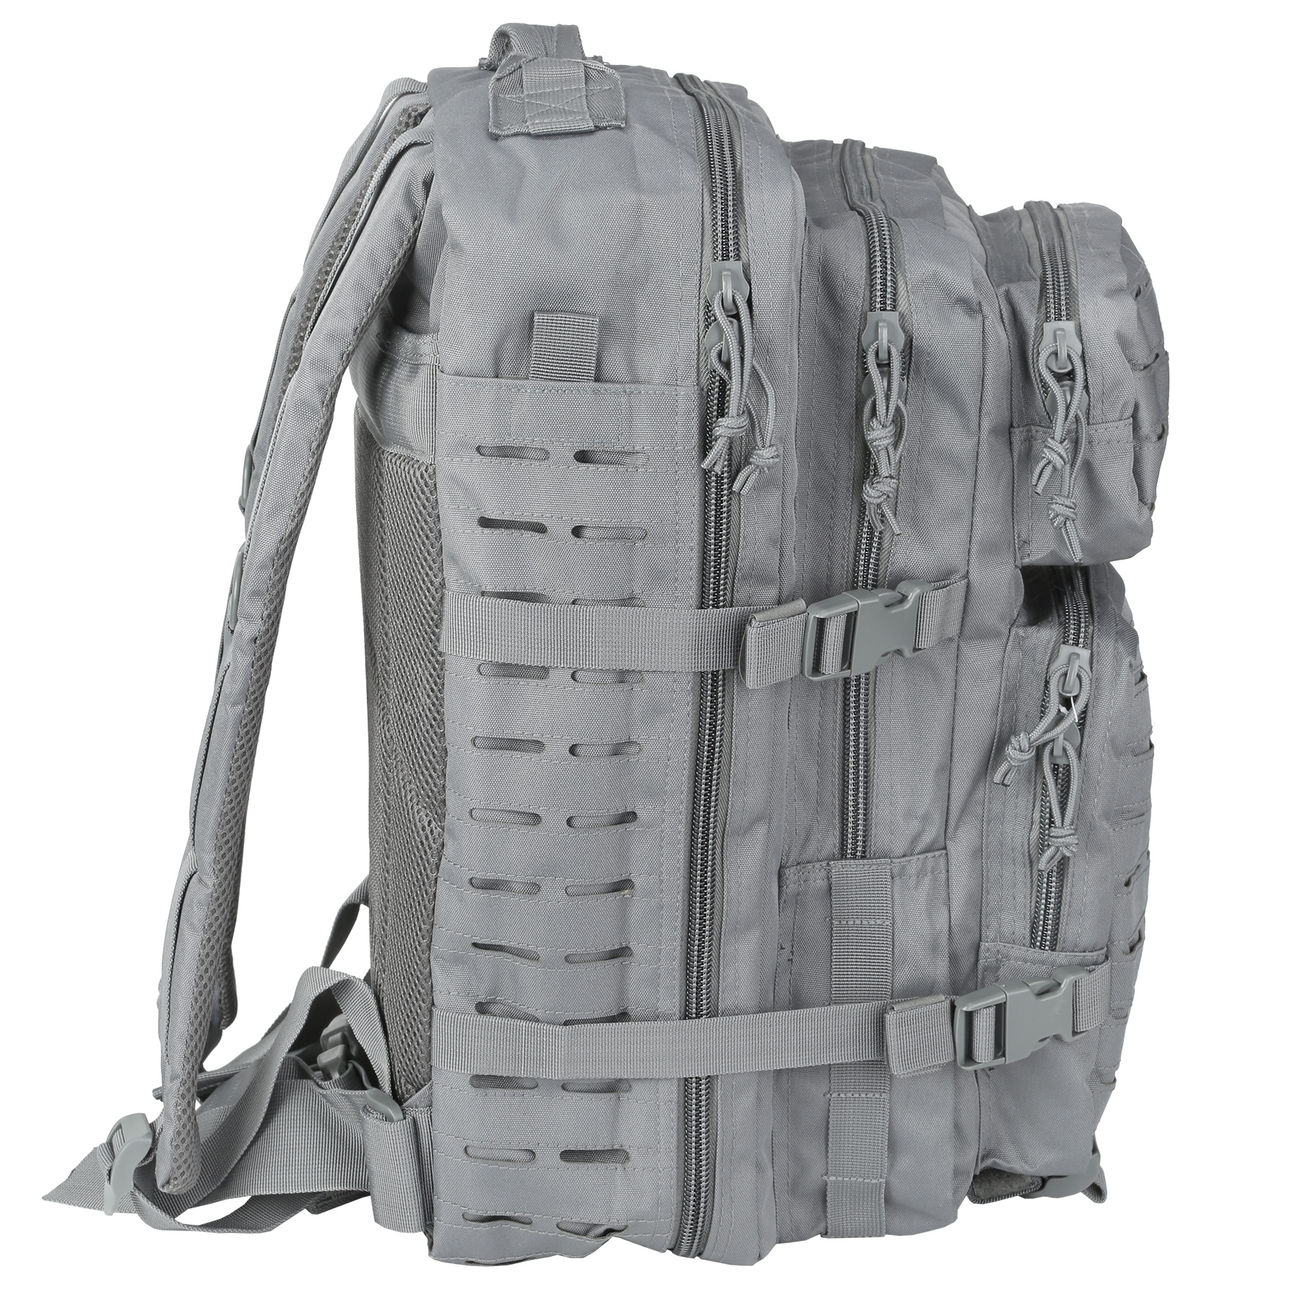 Mil-Tec Rucksack US Assault Pack Laser Cut large 36L Urban grey 1